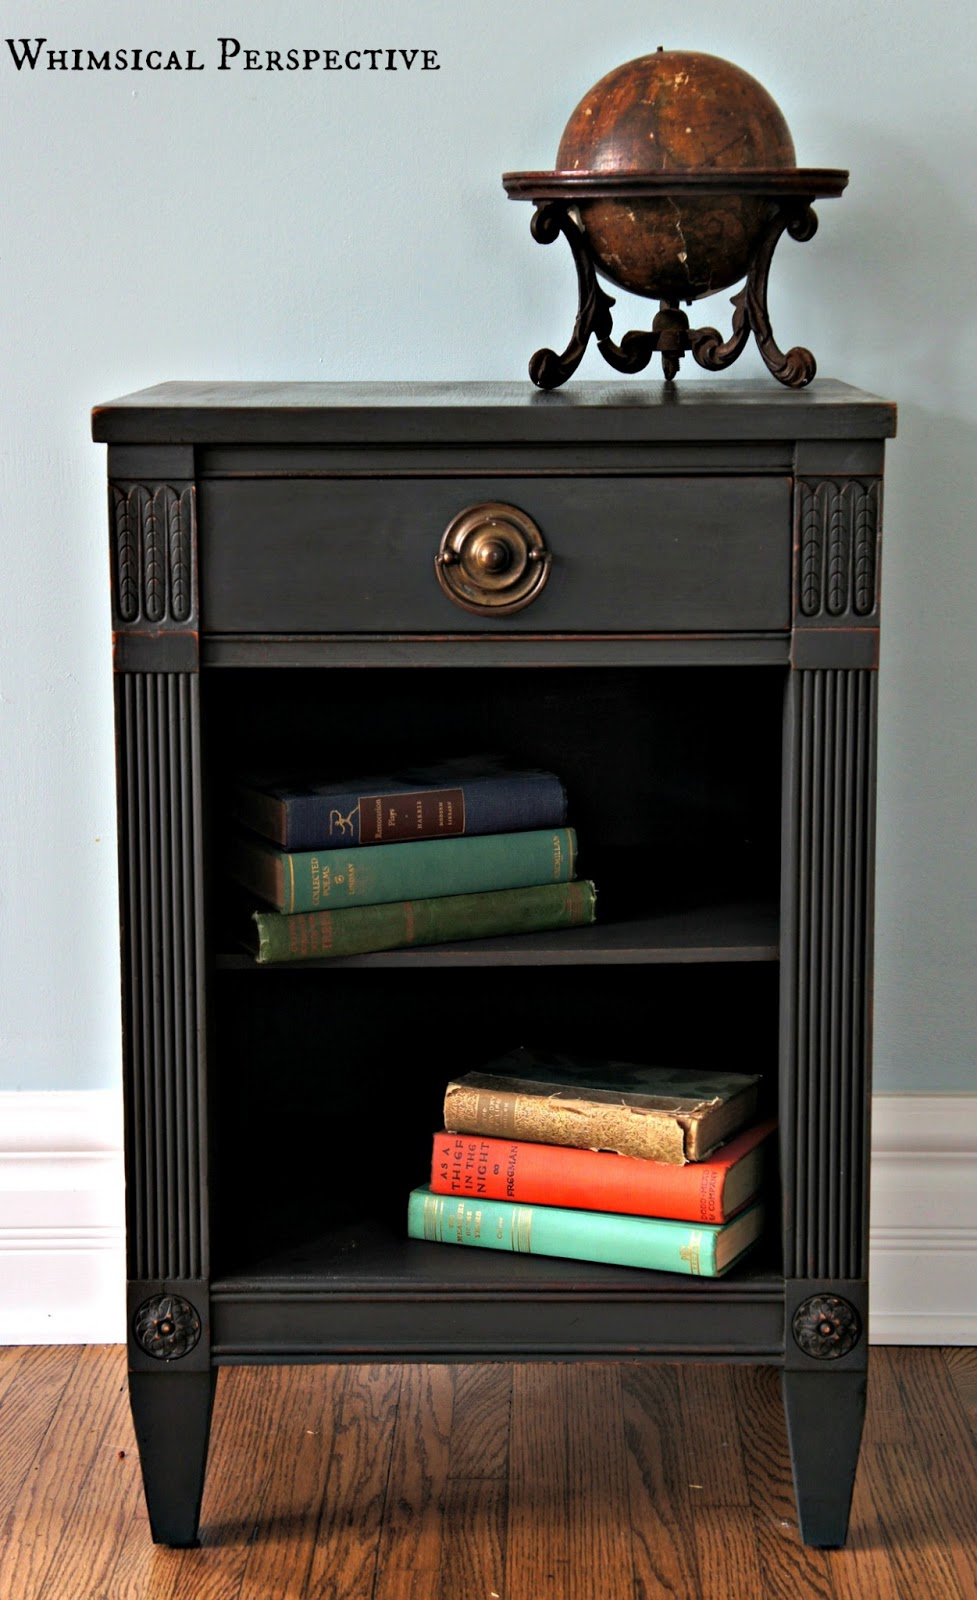 Populair Whimsical Perspective: Meet Graphite: My Annie Sloan Chalk Paint  @ZJ36